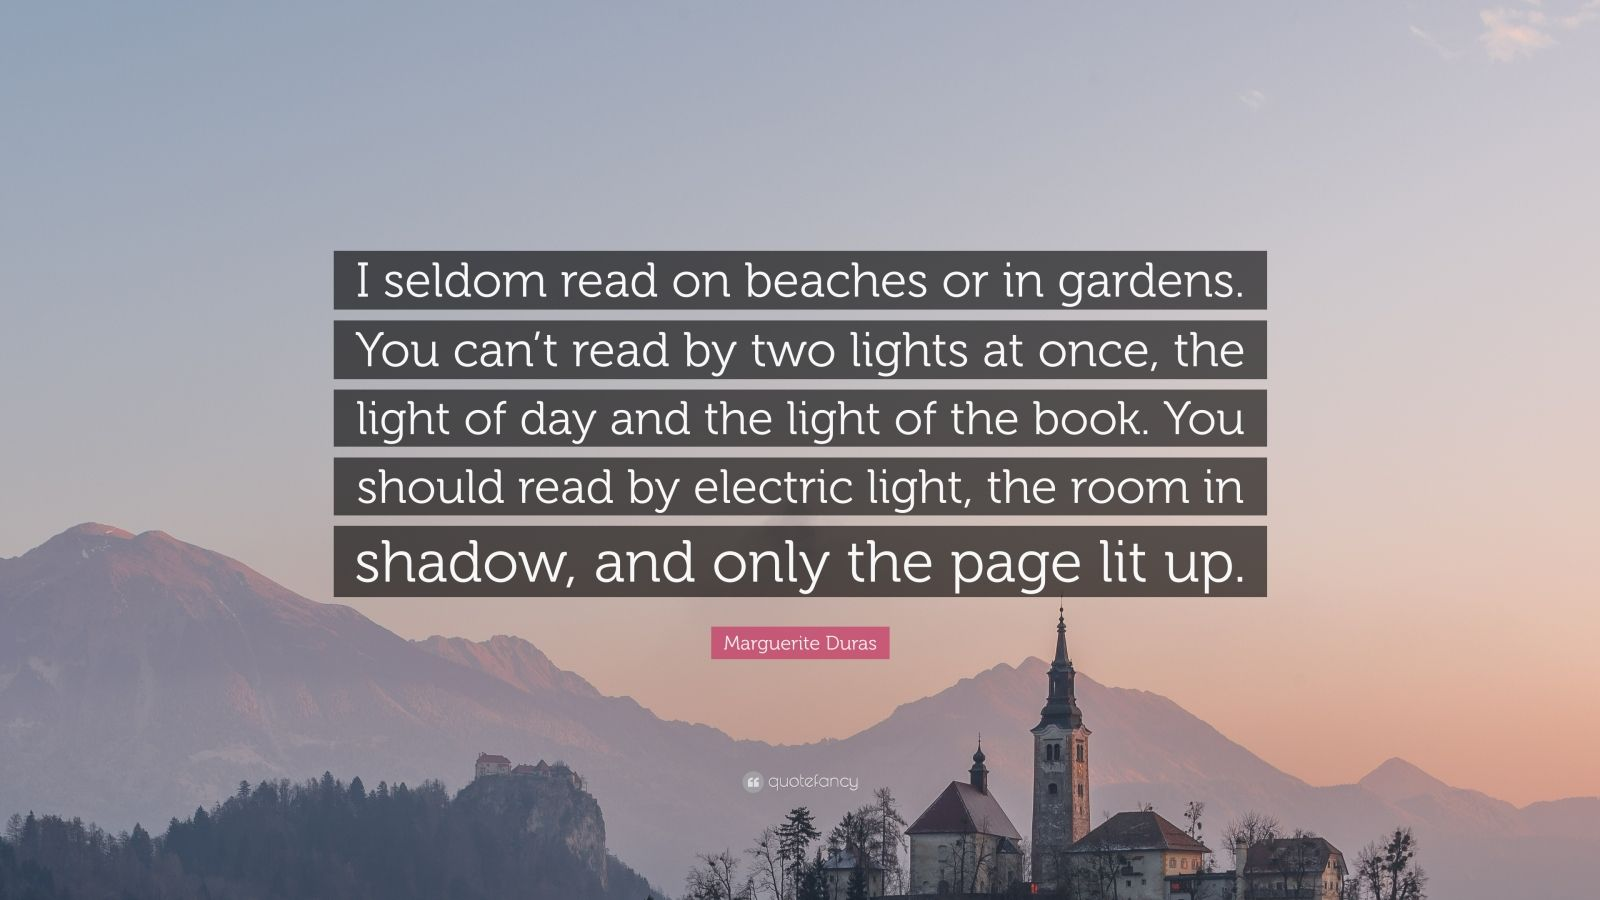 """Marguerite Duras Quote: """"I seldom read on beaches or in gardens. You can't read by two lights at once, the light of day and the light of the book. You should read by electric light, the room in shadow, and only the page lit up."""""""